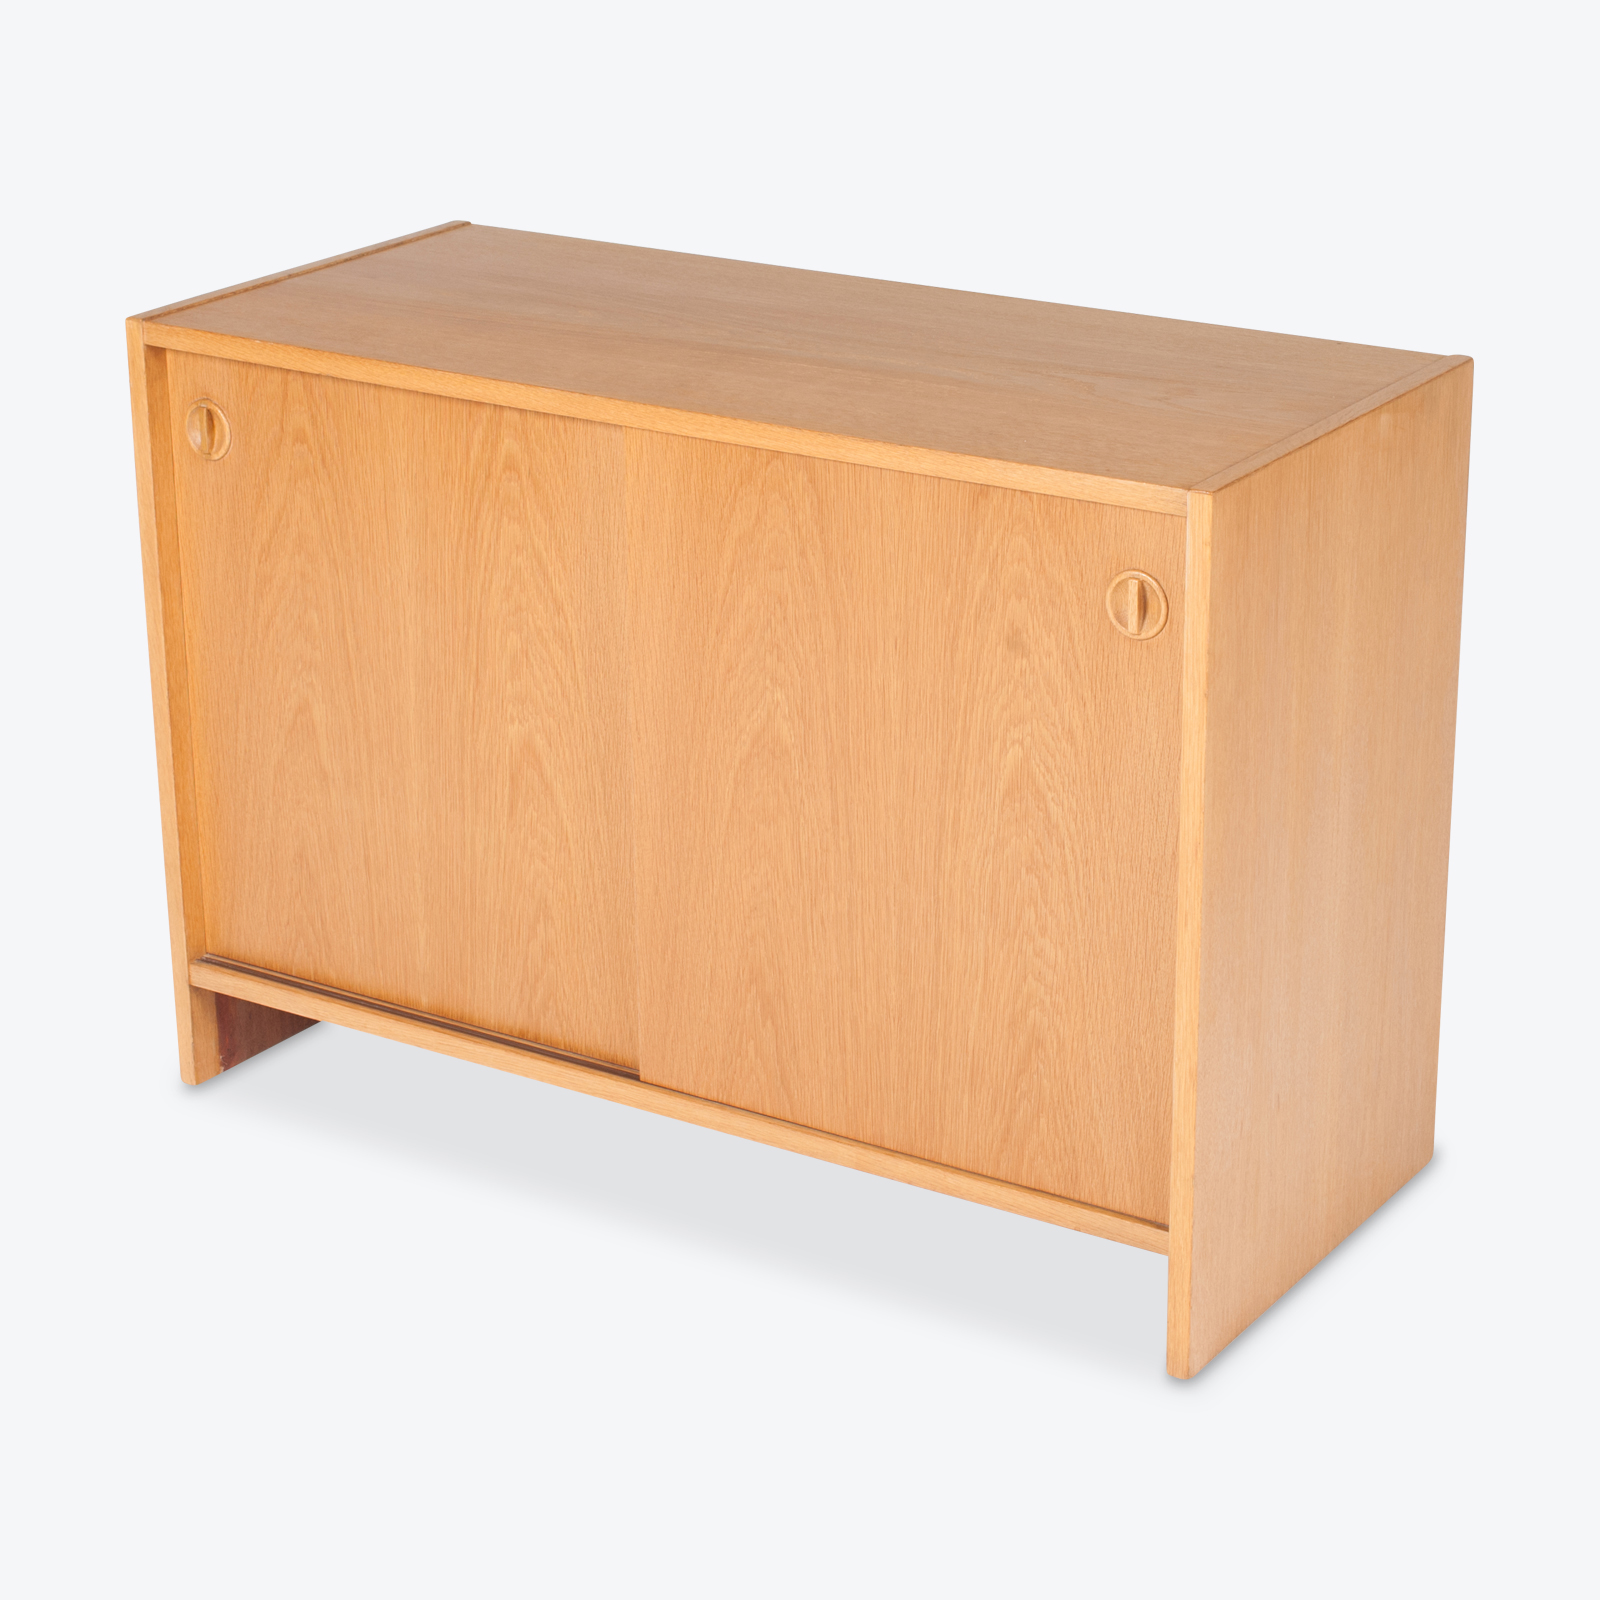 Cabinet In Oak With Sliding Doors, 1960s, Denmark Hero 1